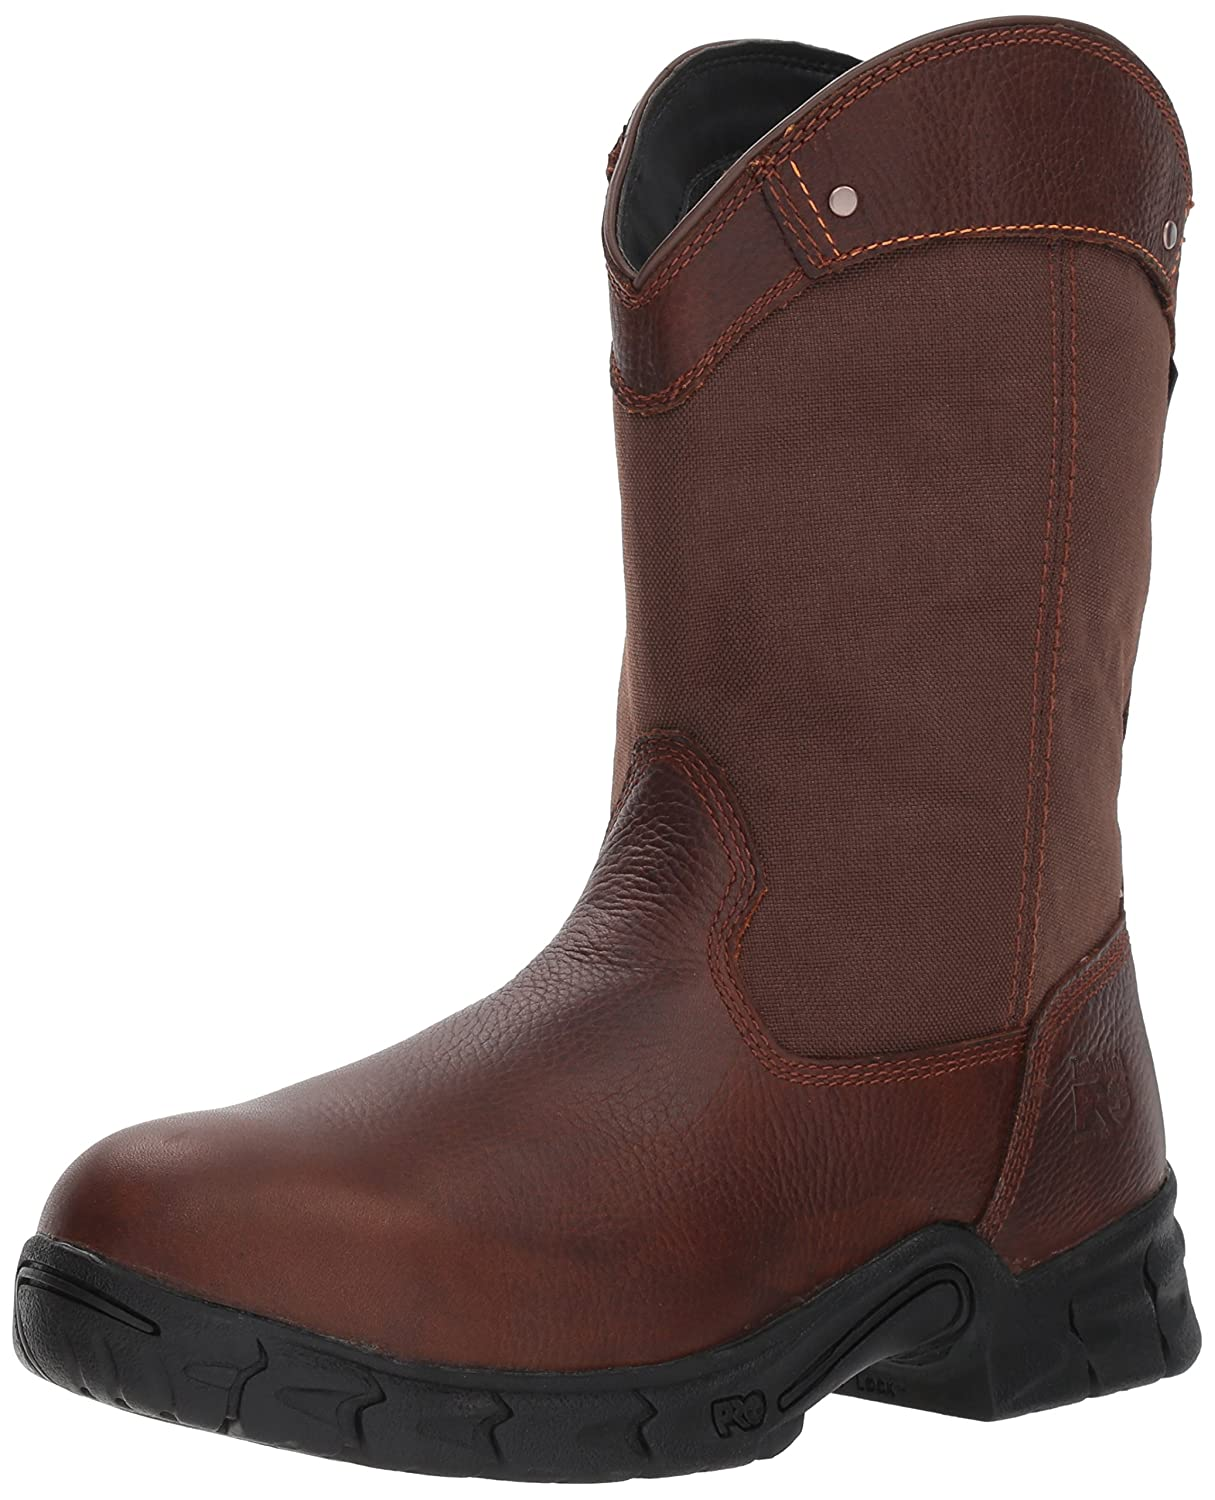 CHIPPEWA USA RIDING HUNTING BOOTS SNAKEPROOF  WOMENS 91//2M HUNT 14character